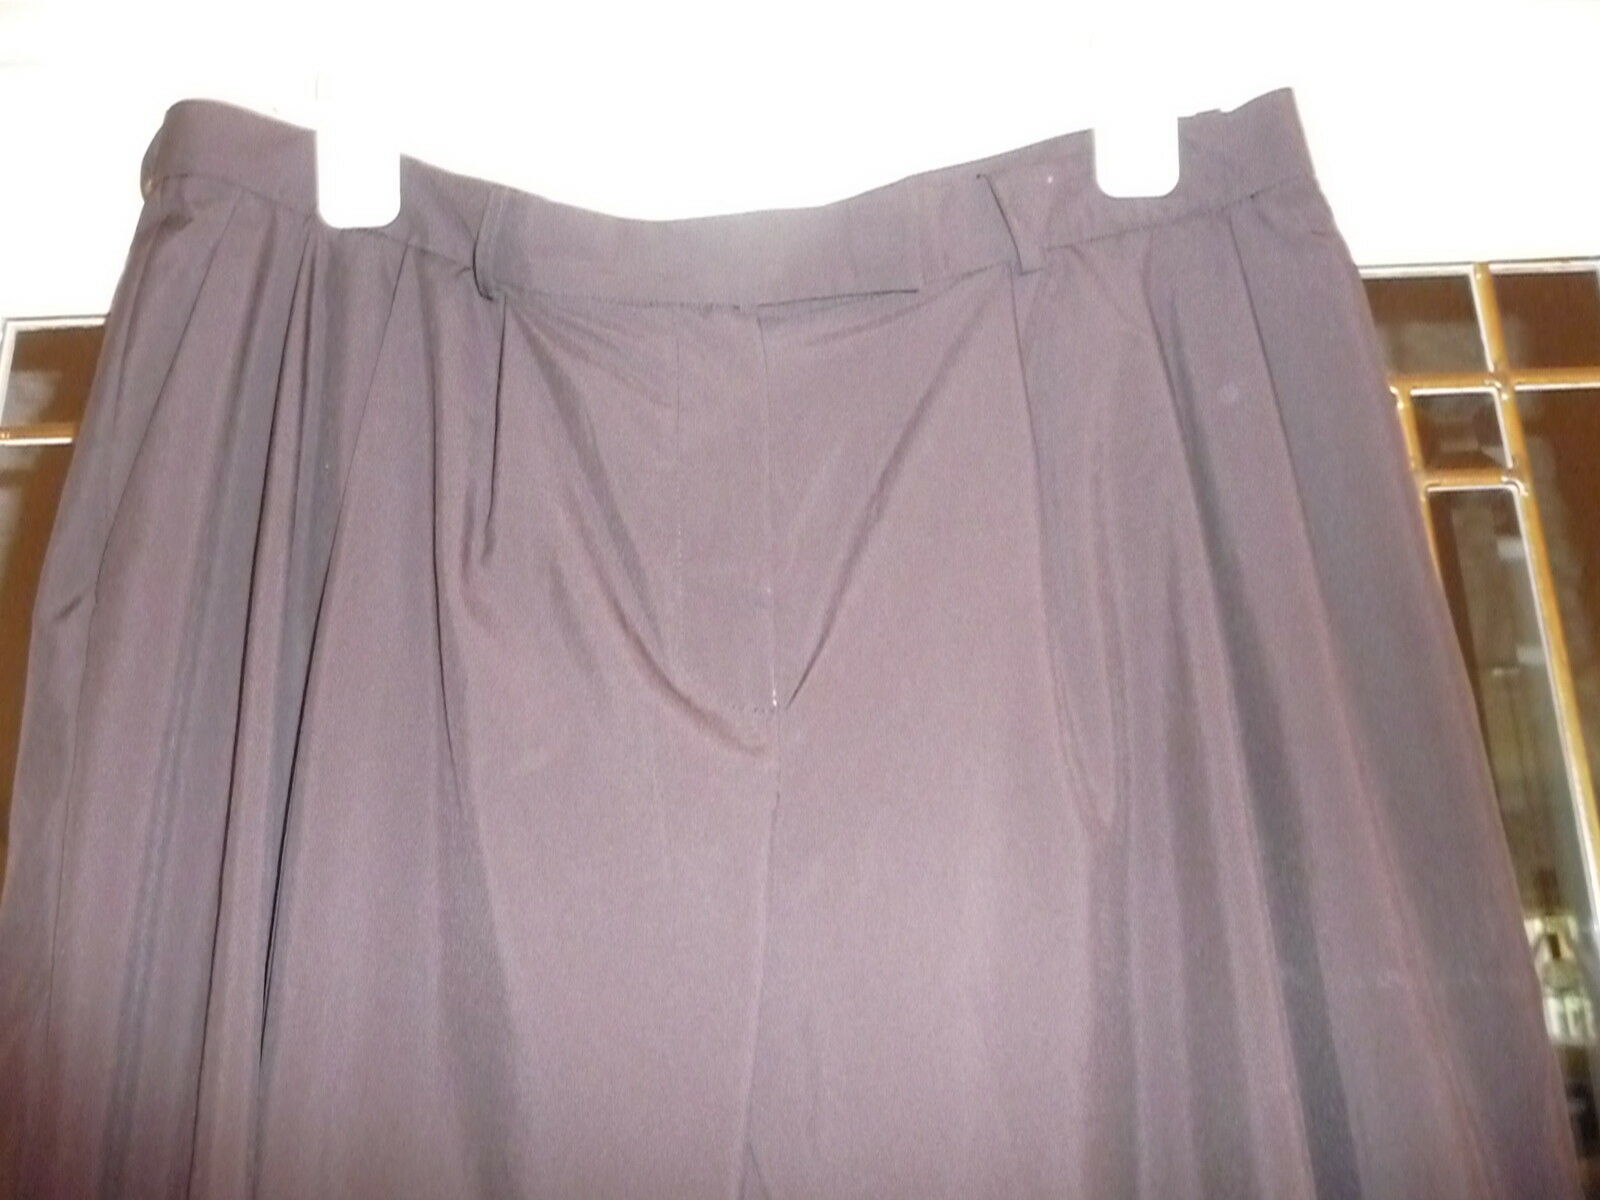 Lanvin front zip & pleated pants eggplant brown 36 waist see listing